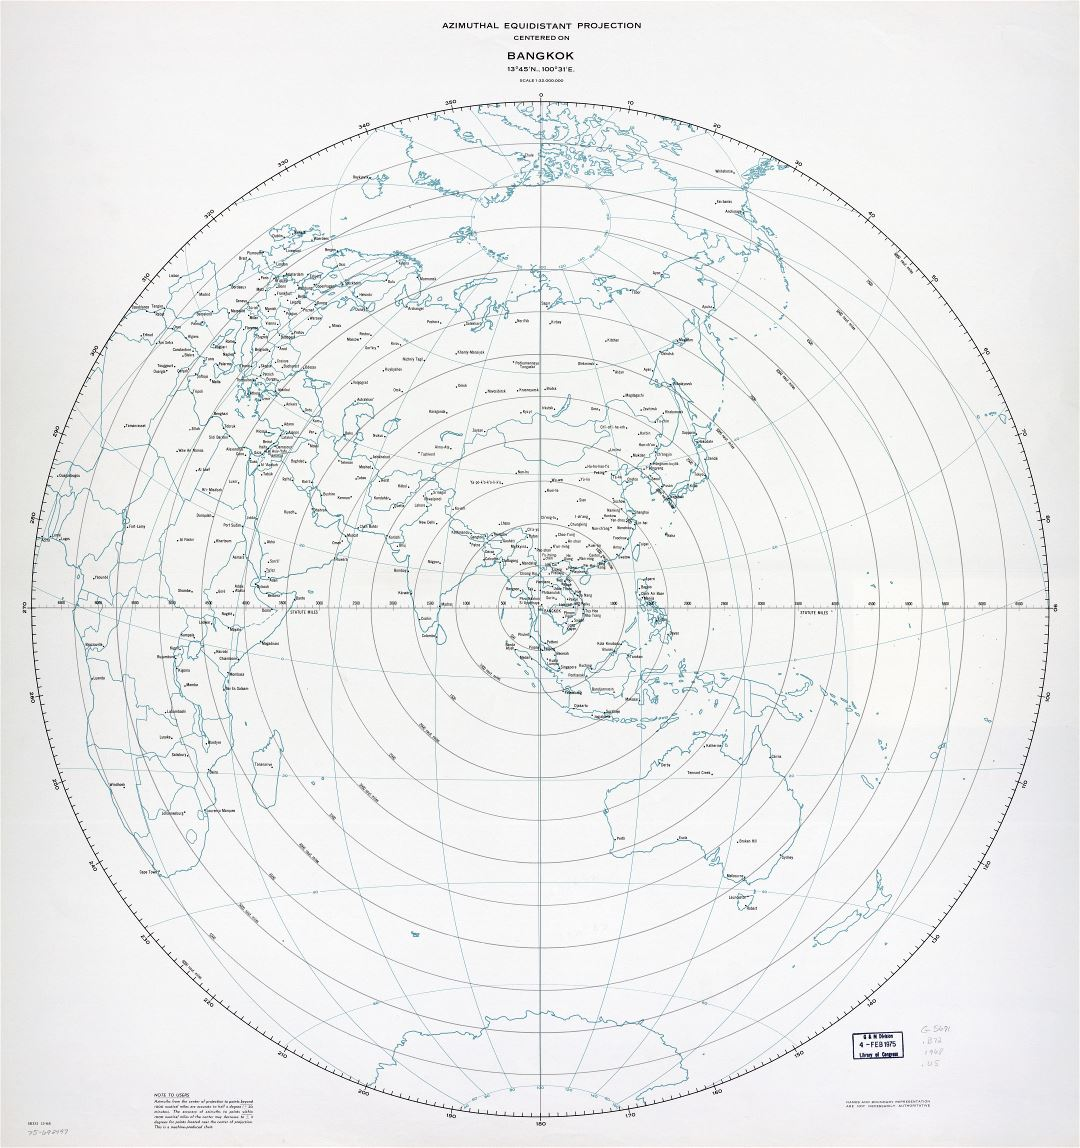 Large scale detailed azimuthal equidistant projection map centered on Bangkok - 1968